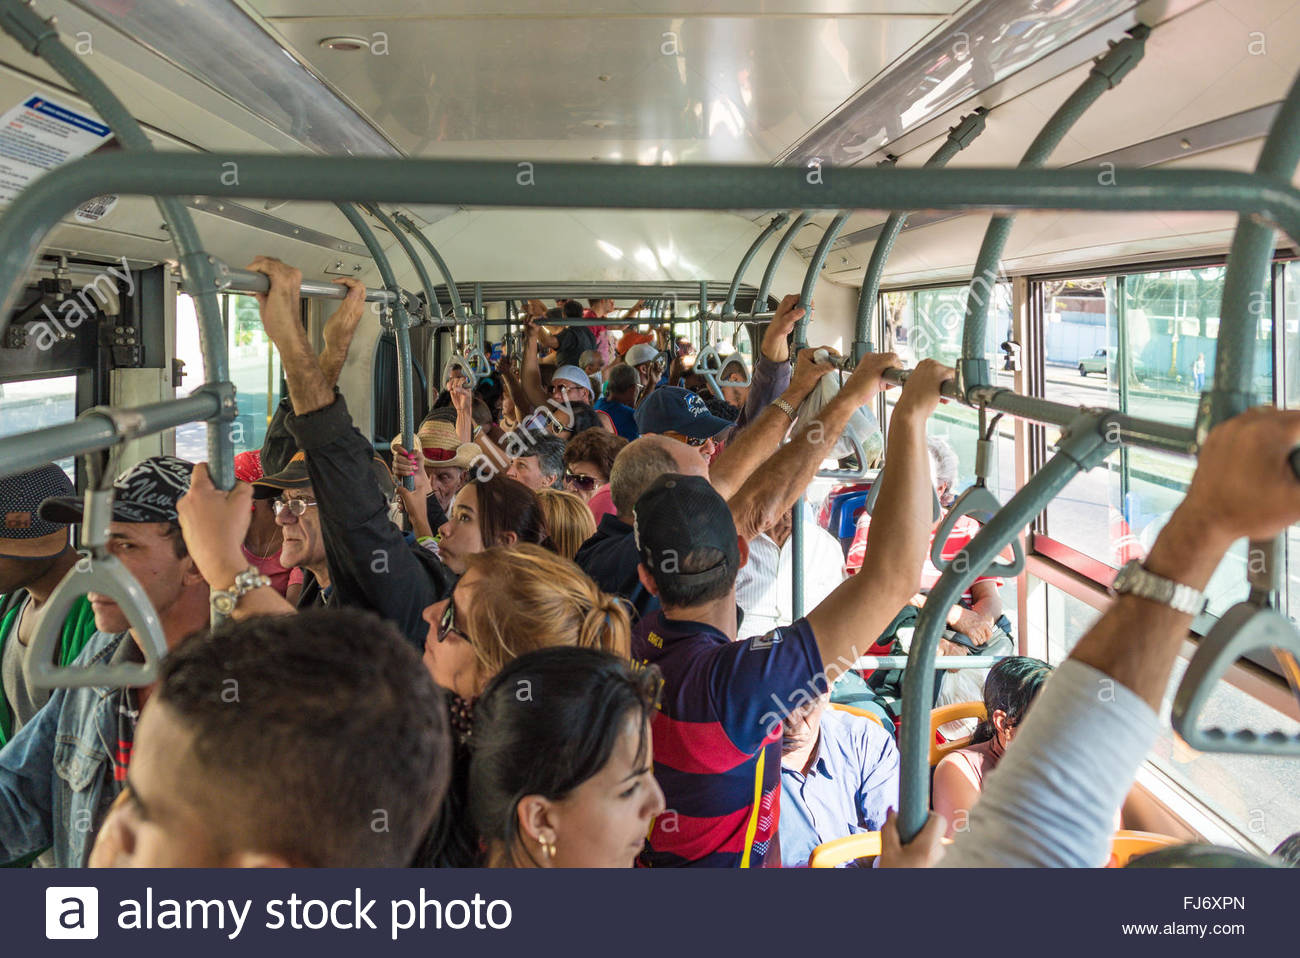 Short essay on TRAVELLING IN AN OVER CROWDED BUS